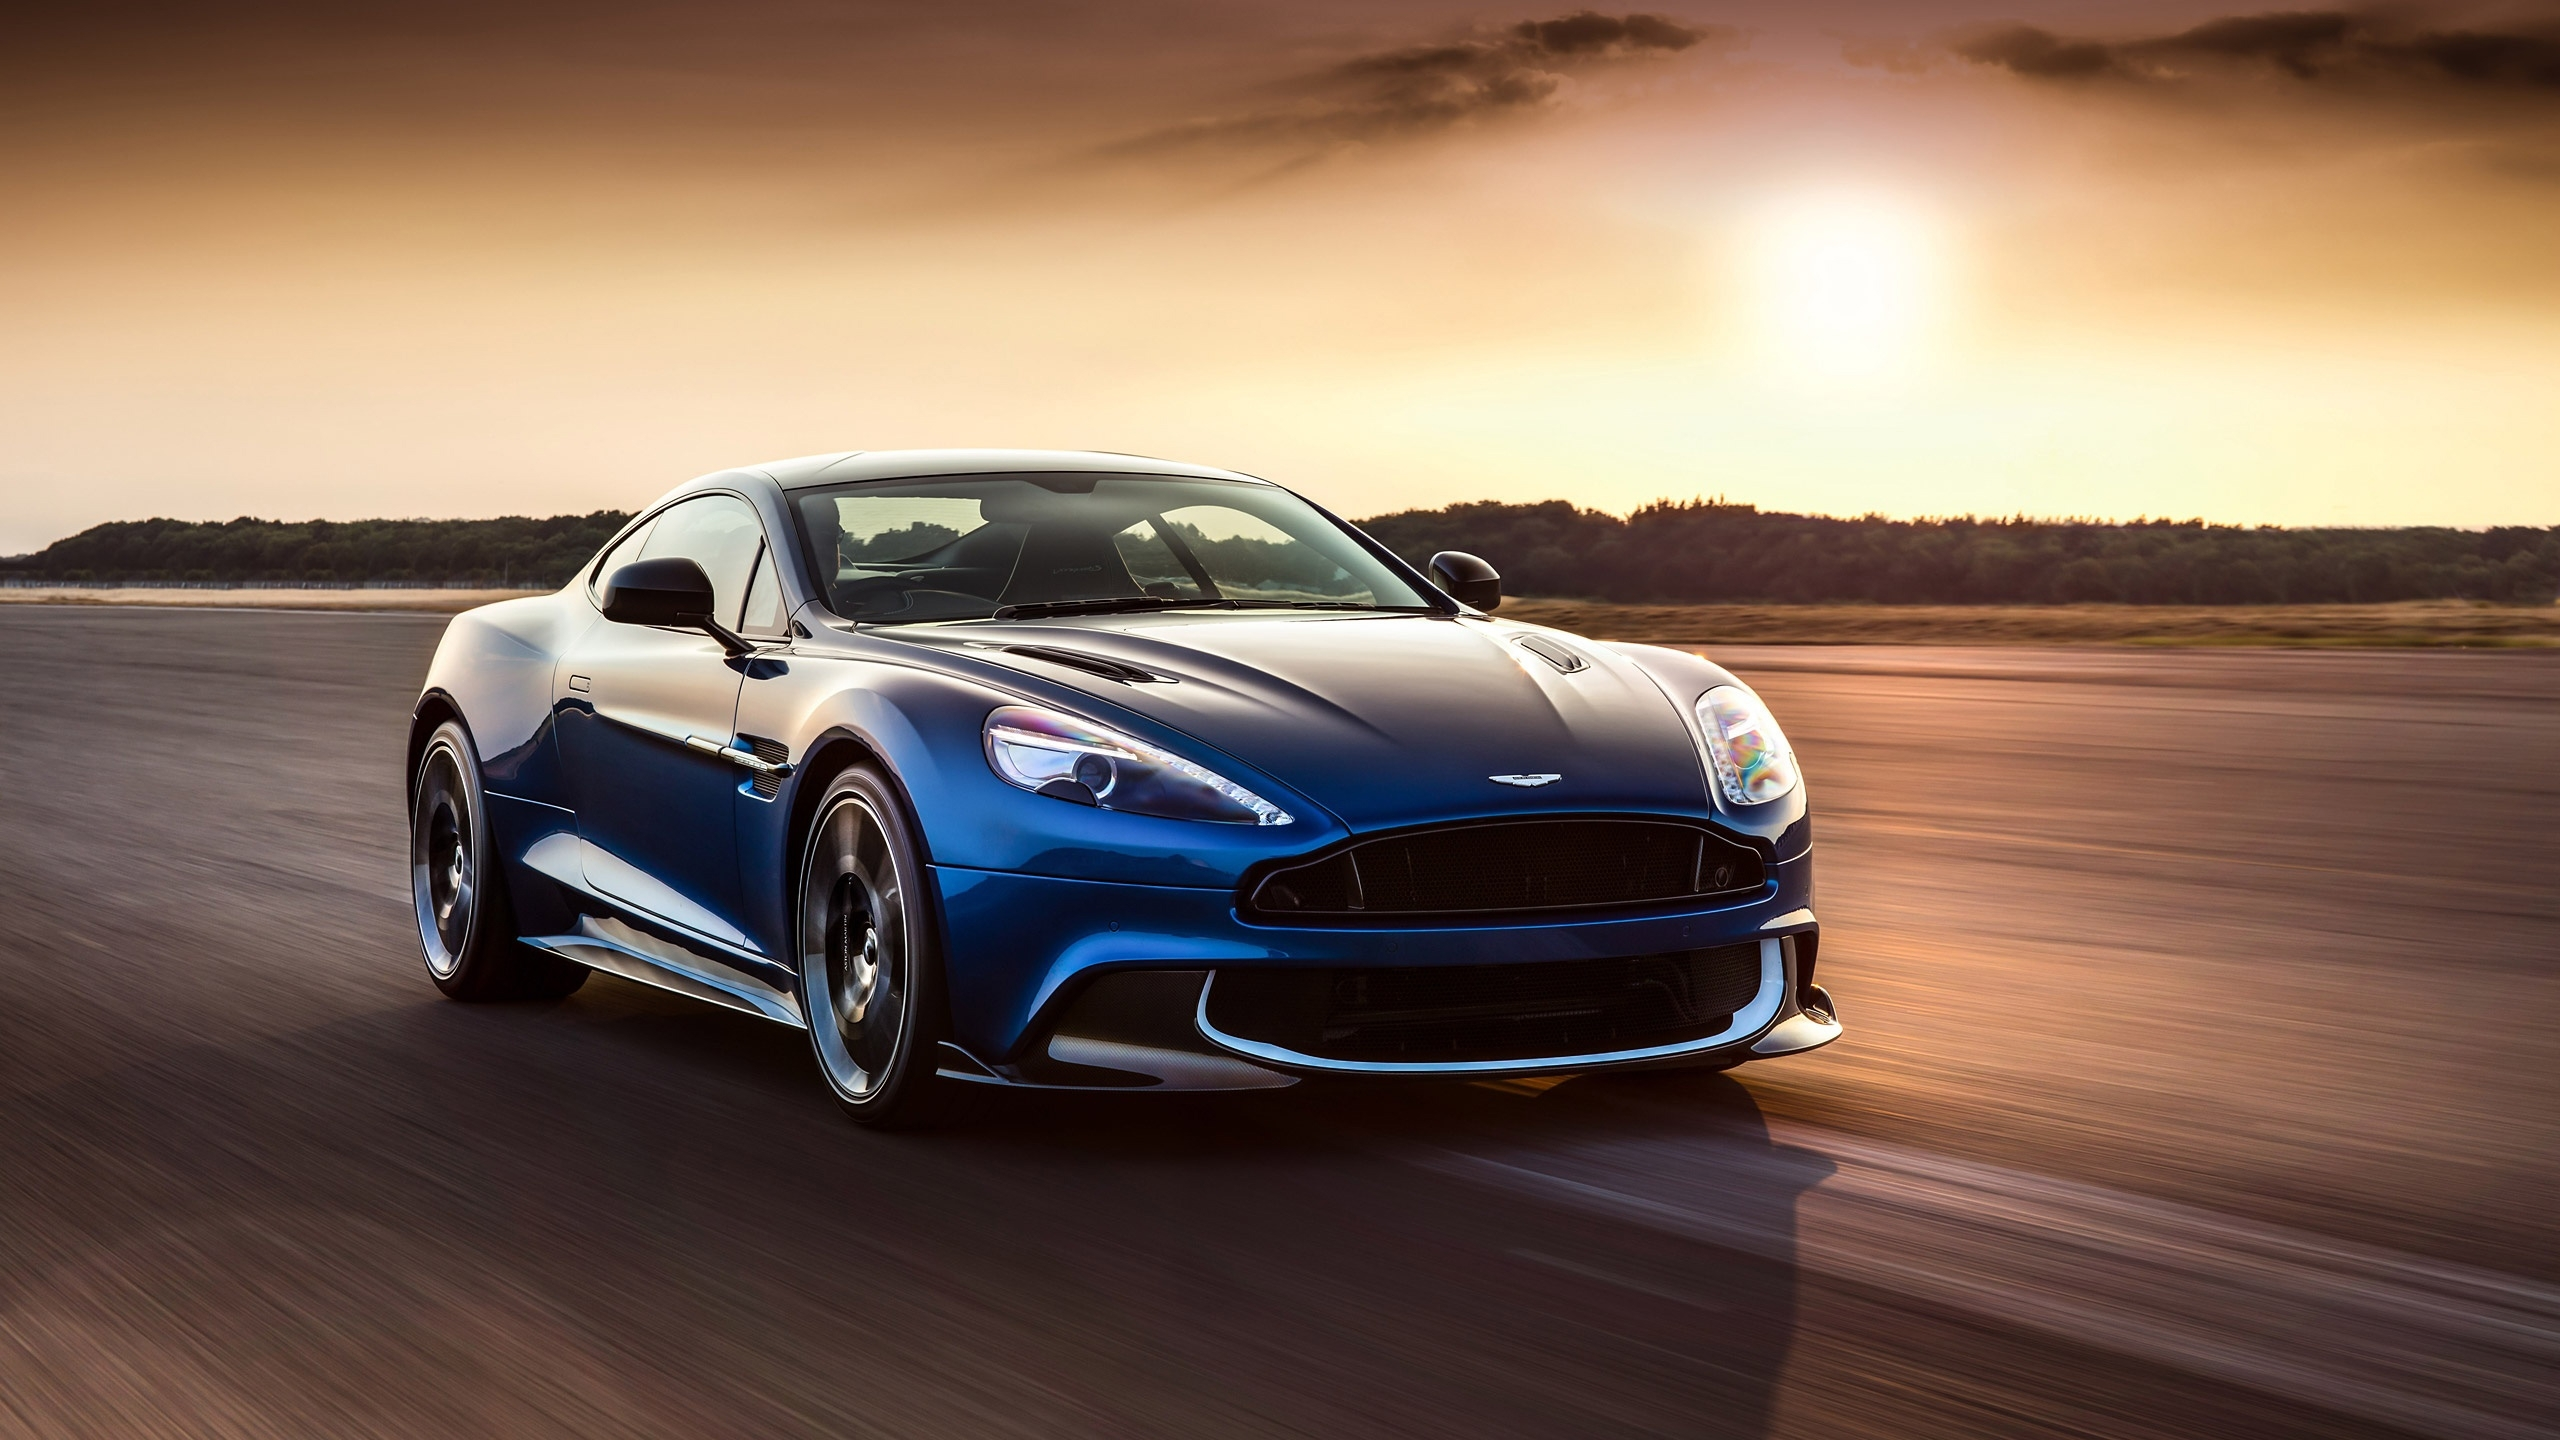 2017 aston martin vanquish s wallpaper | hd car wallpapers| id #7170